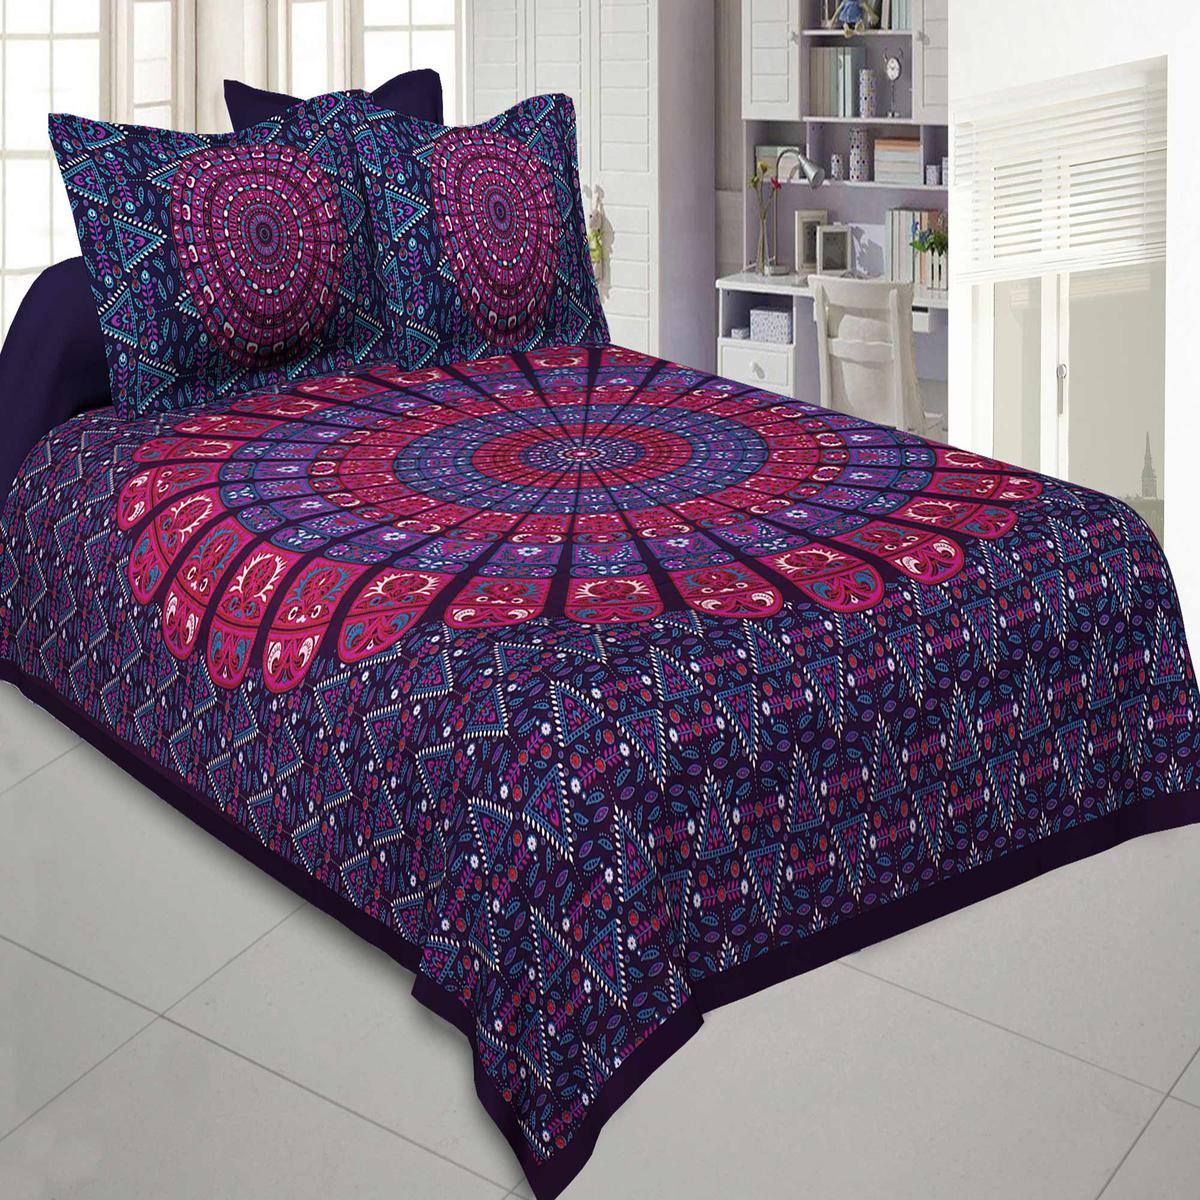 Jaipur Fabric Pure Cotton Purple Colored Mandala Zig Zag Printed King Size Double Bedsheet With Two Pillow Covers